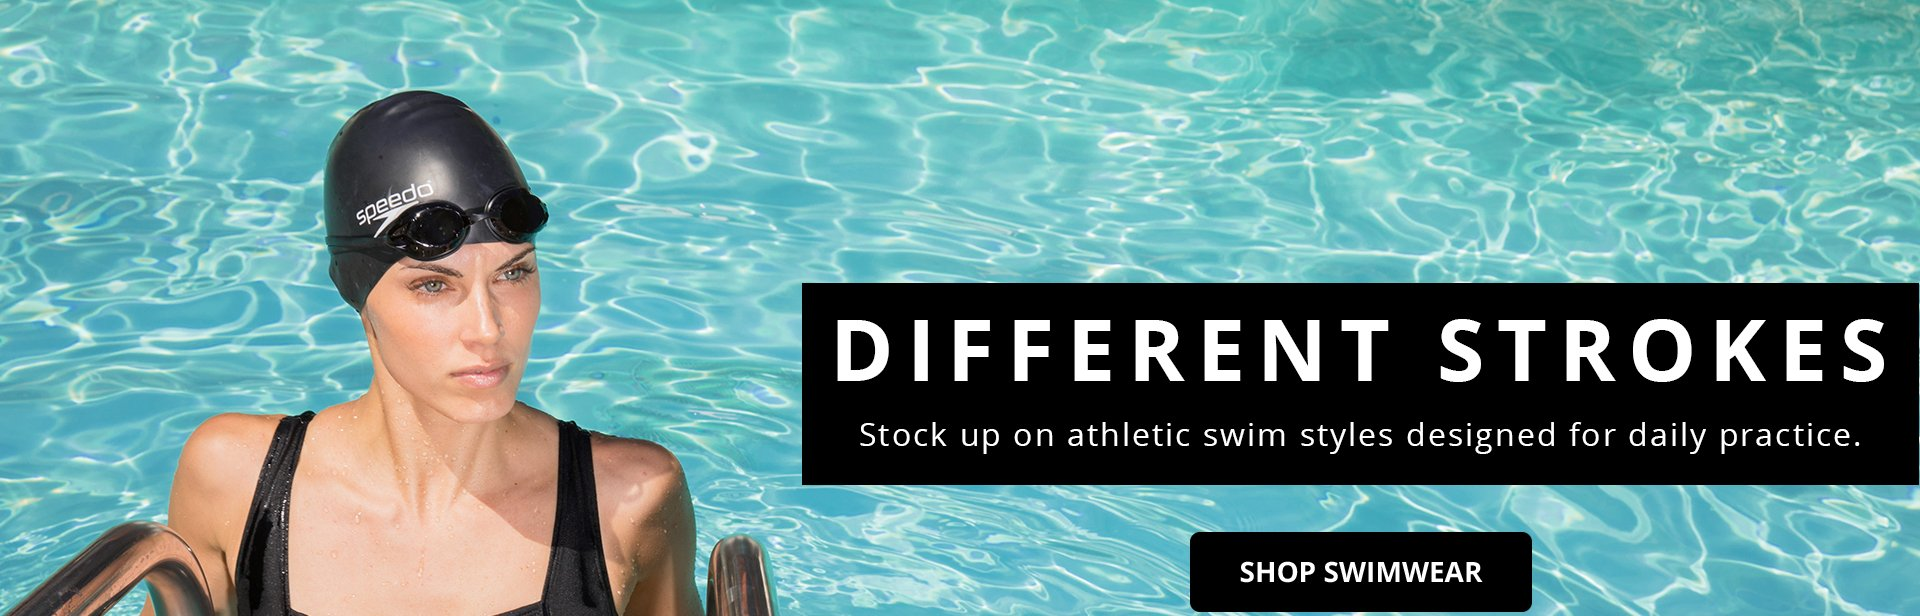 Different Strokes. Stock up on athletic swim styles designed for daily practice. Shop Swimwear